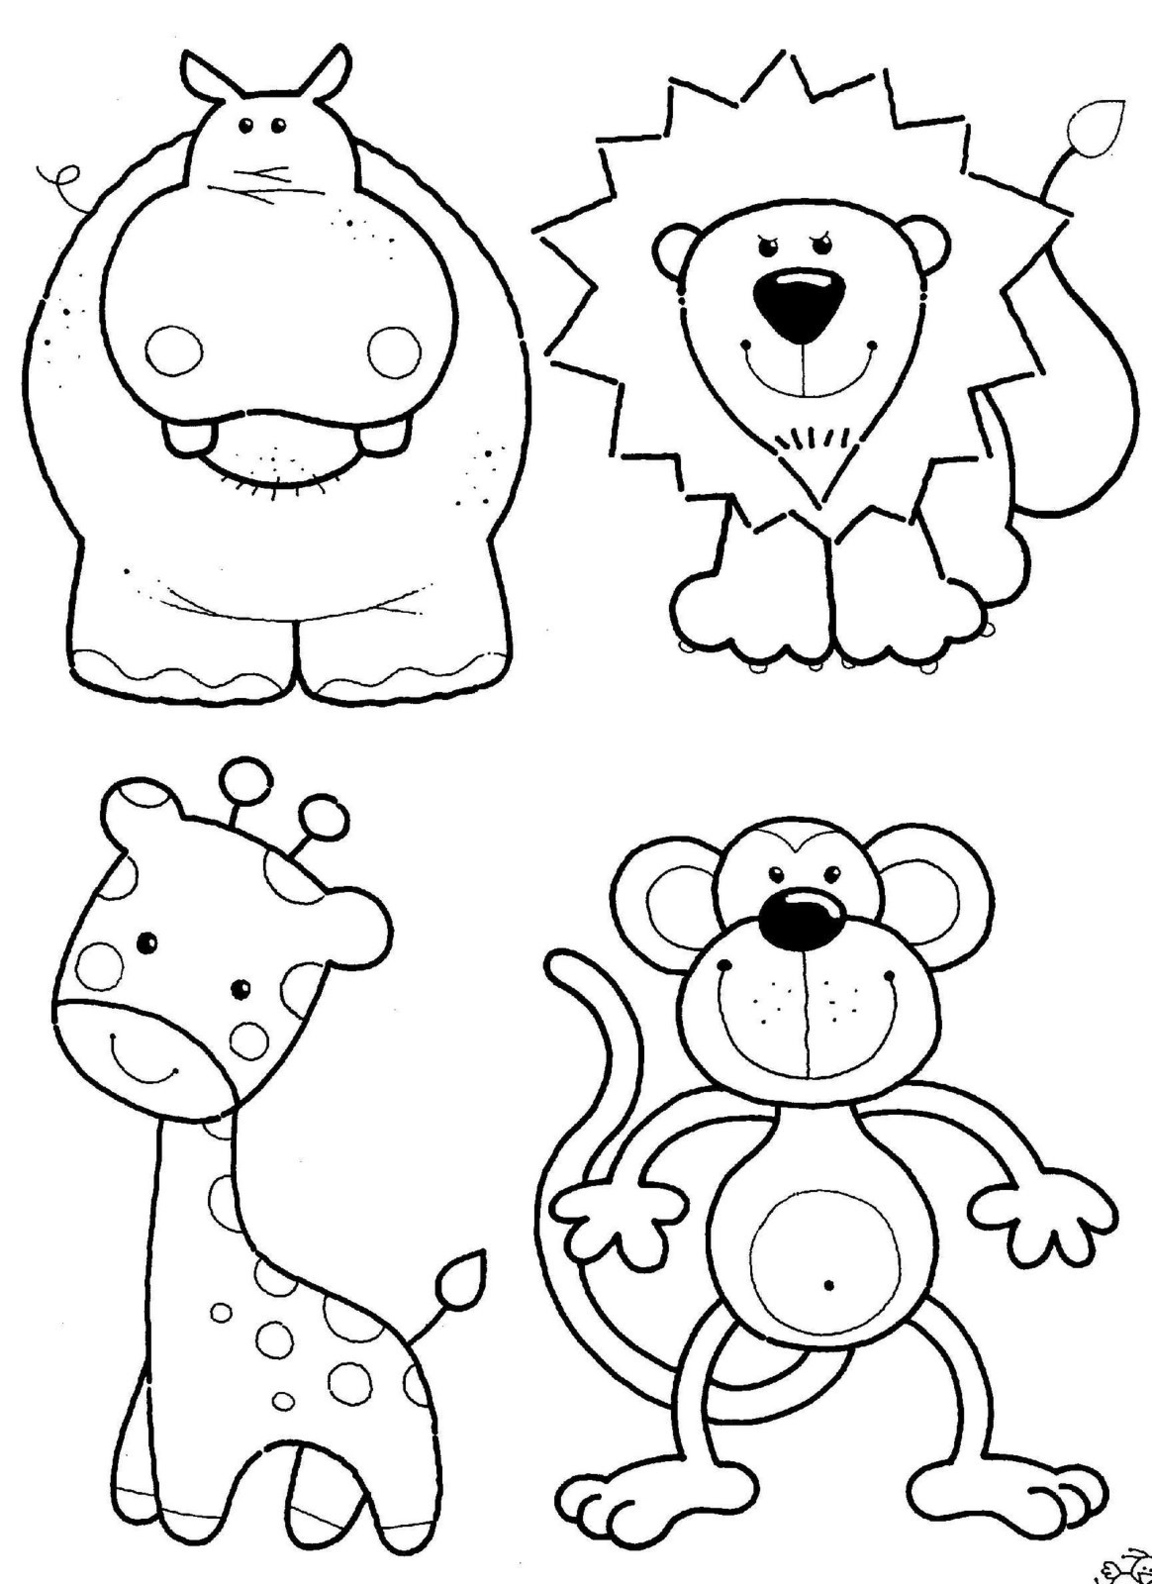 printable coloring pages jungle free image - Suzy Zoo Coloring Pages Printable